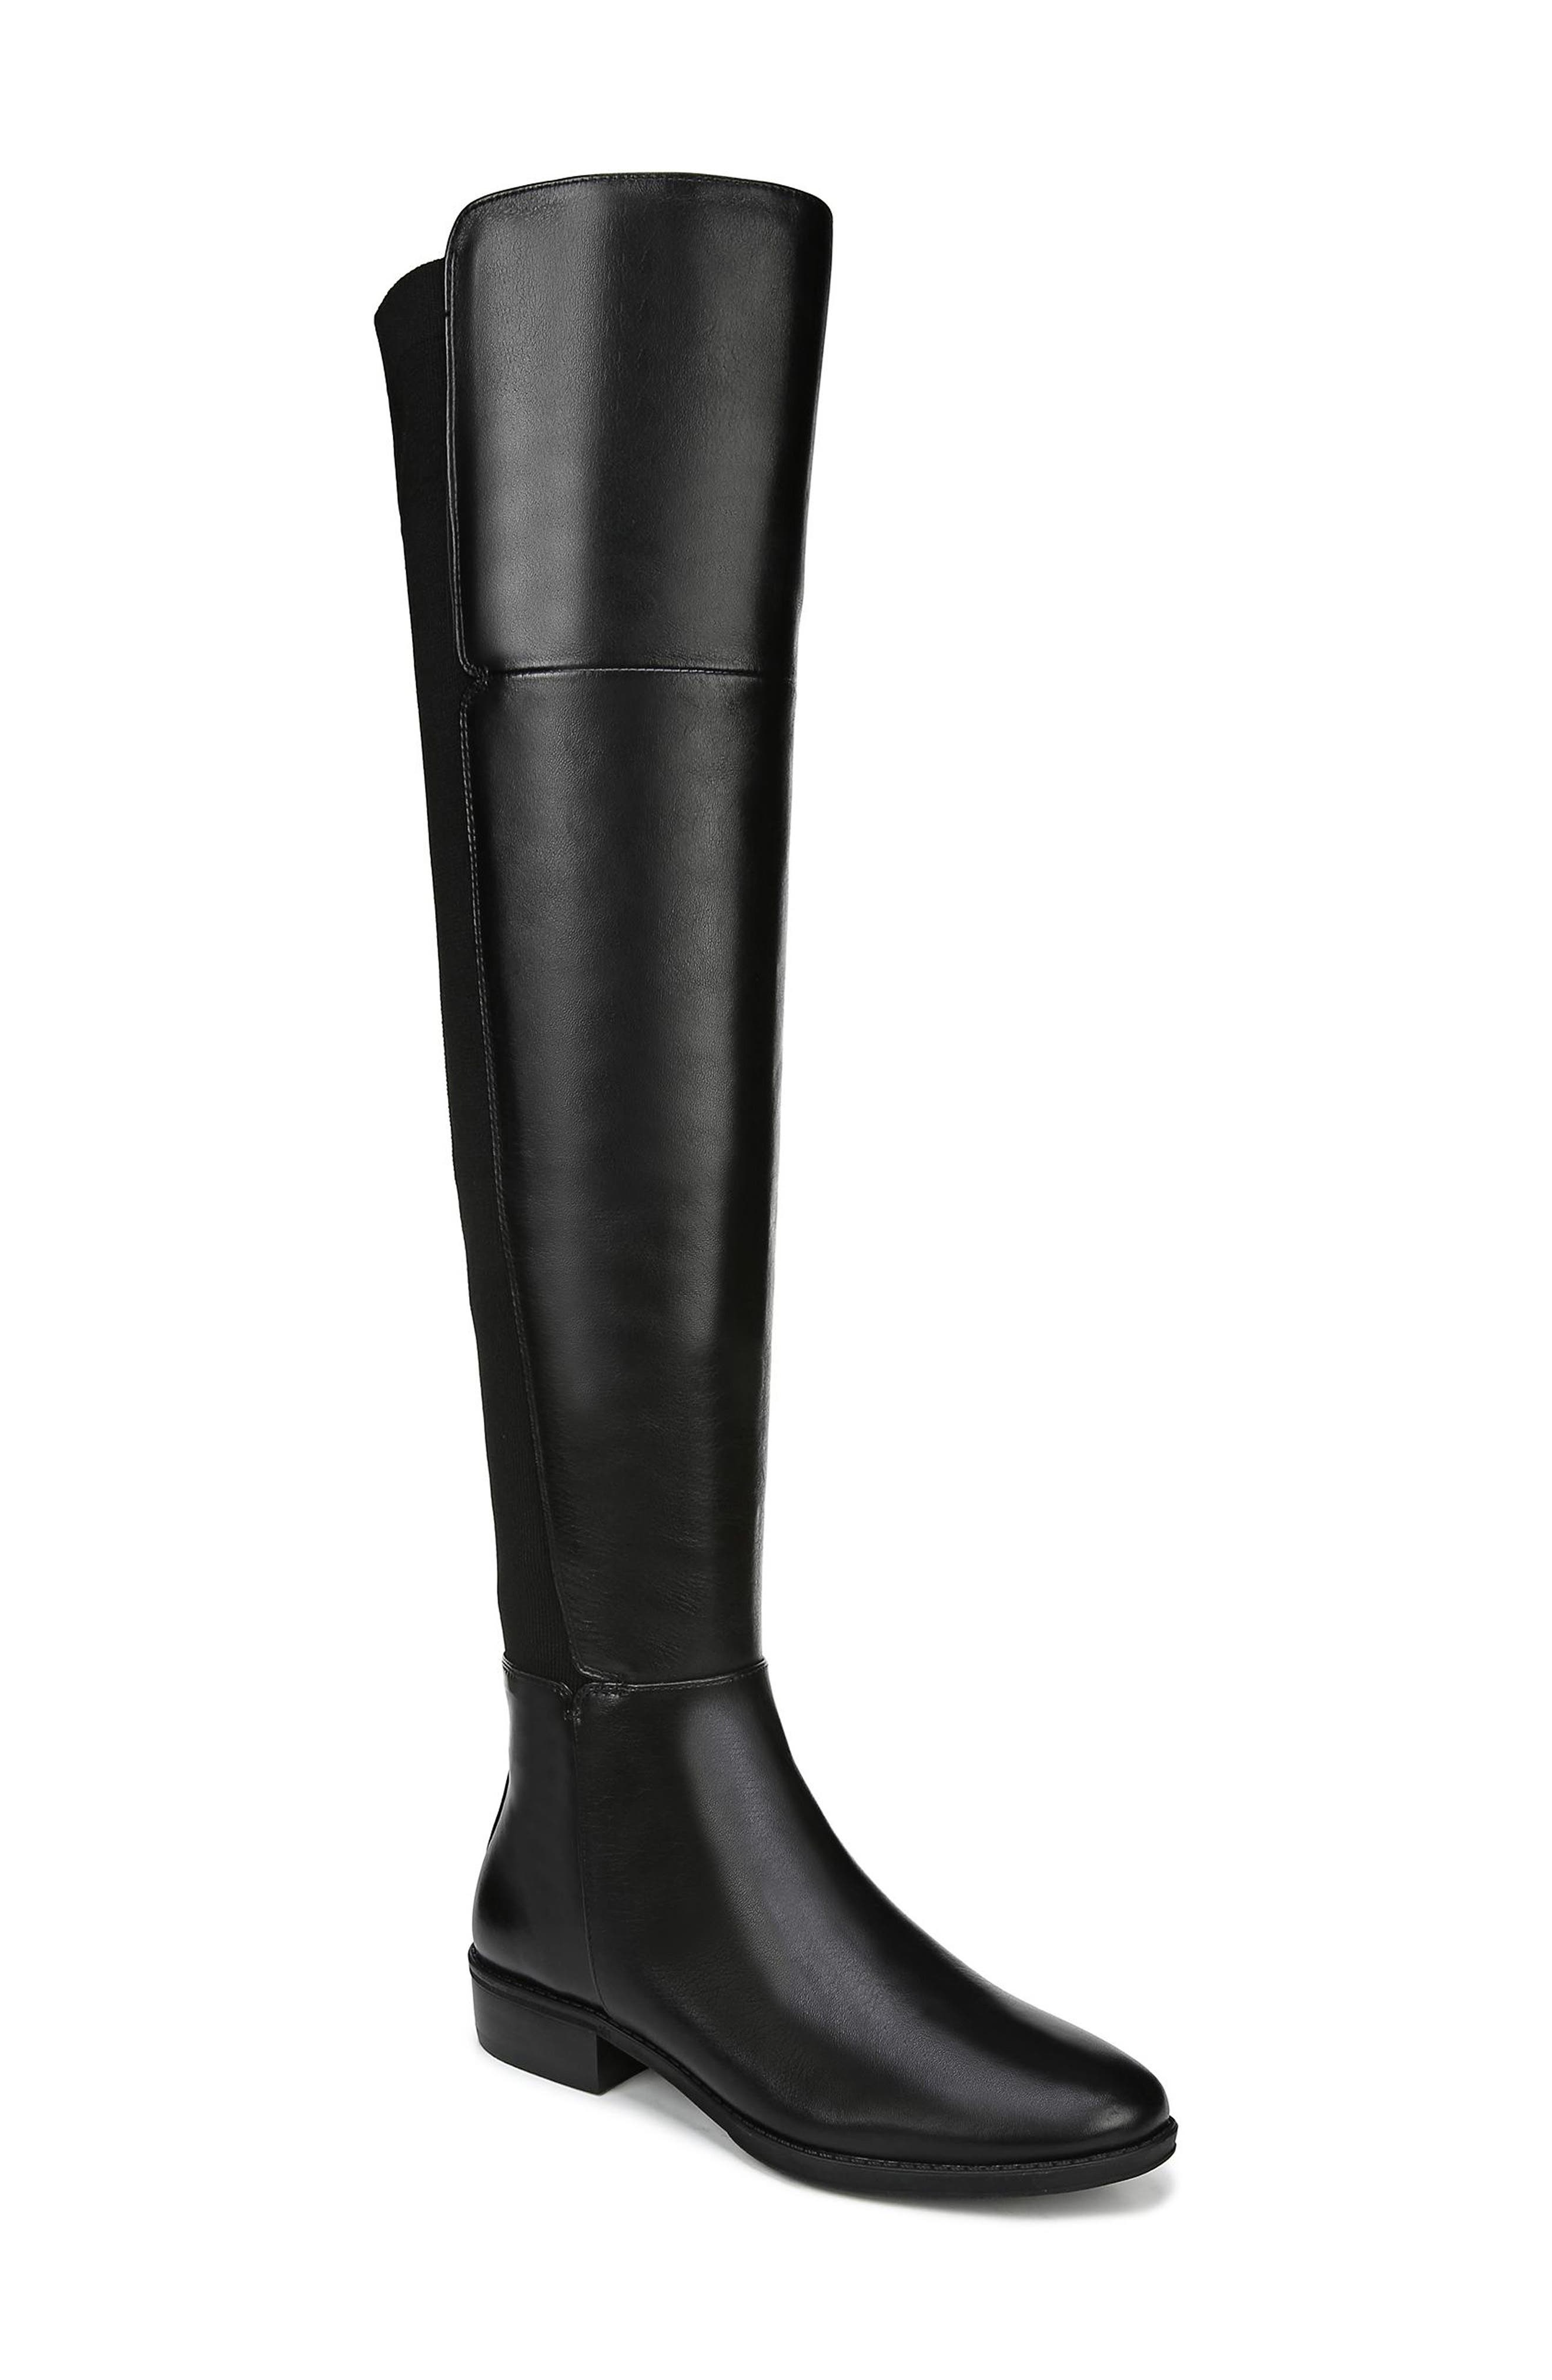 Pam Over the Knee Boot,                         Main,                         color, BLACK LEATHER